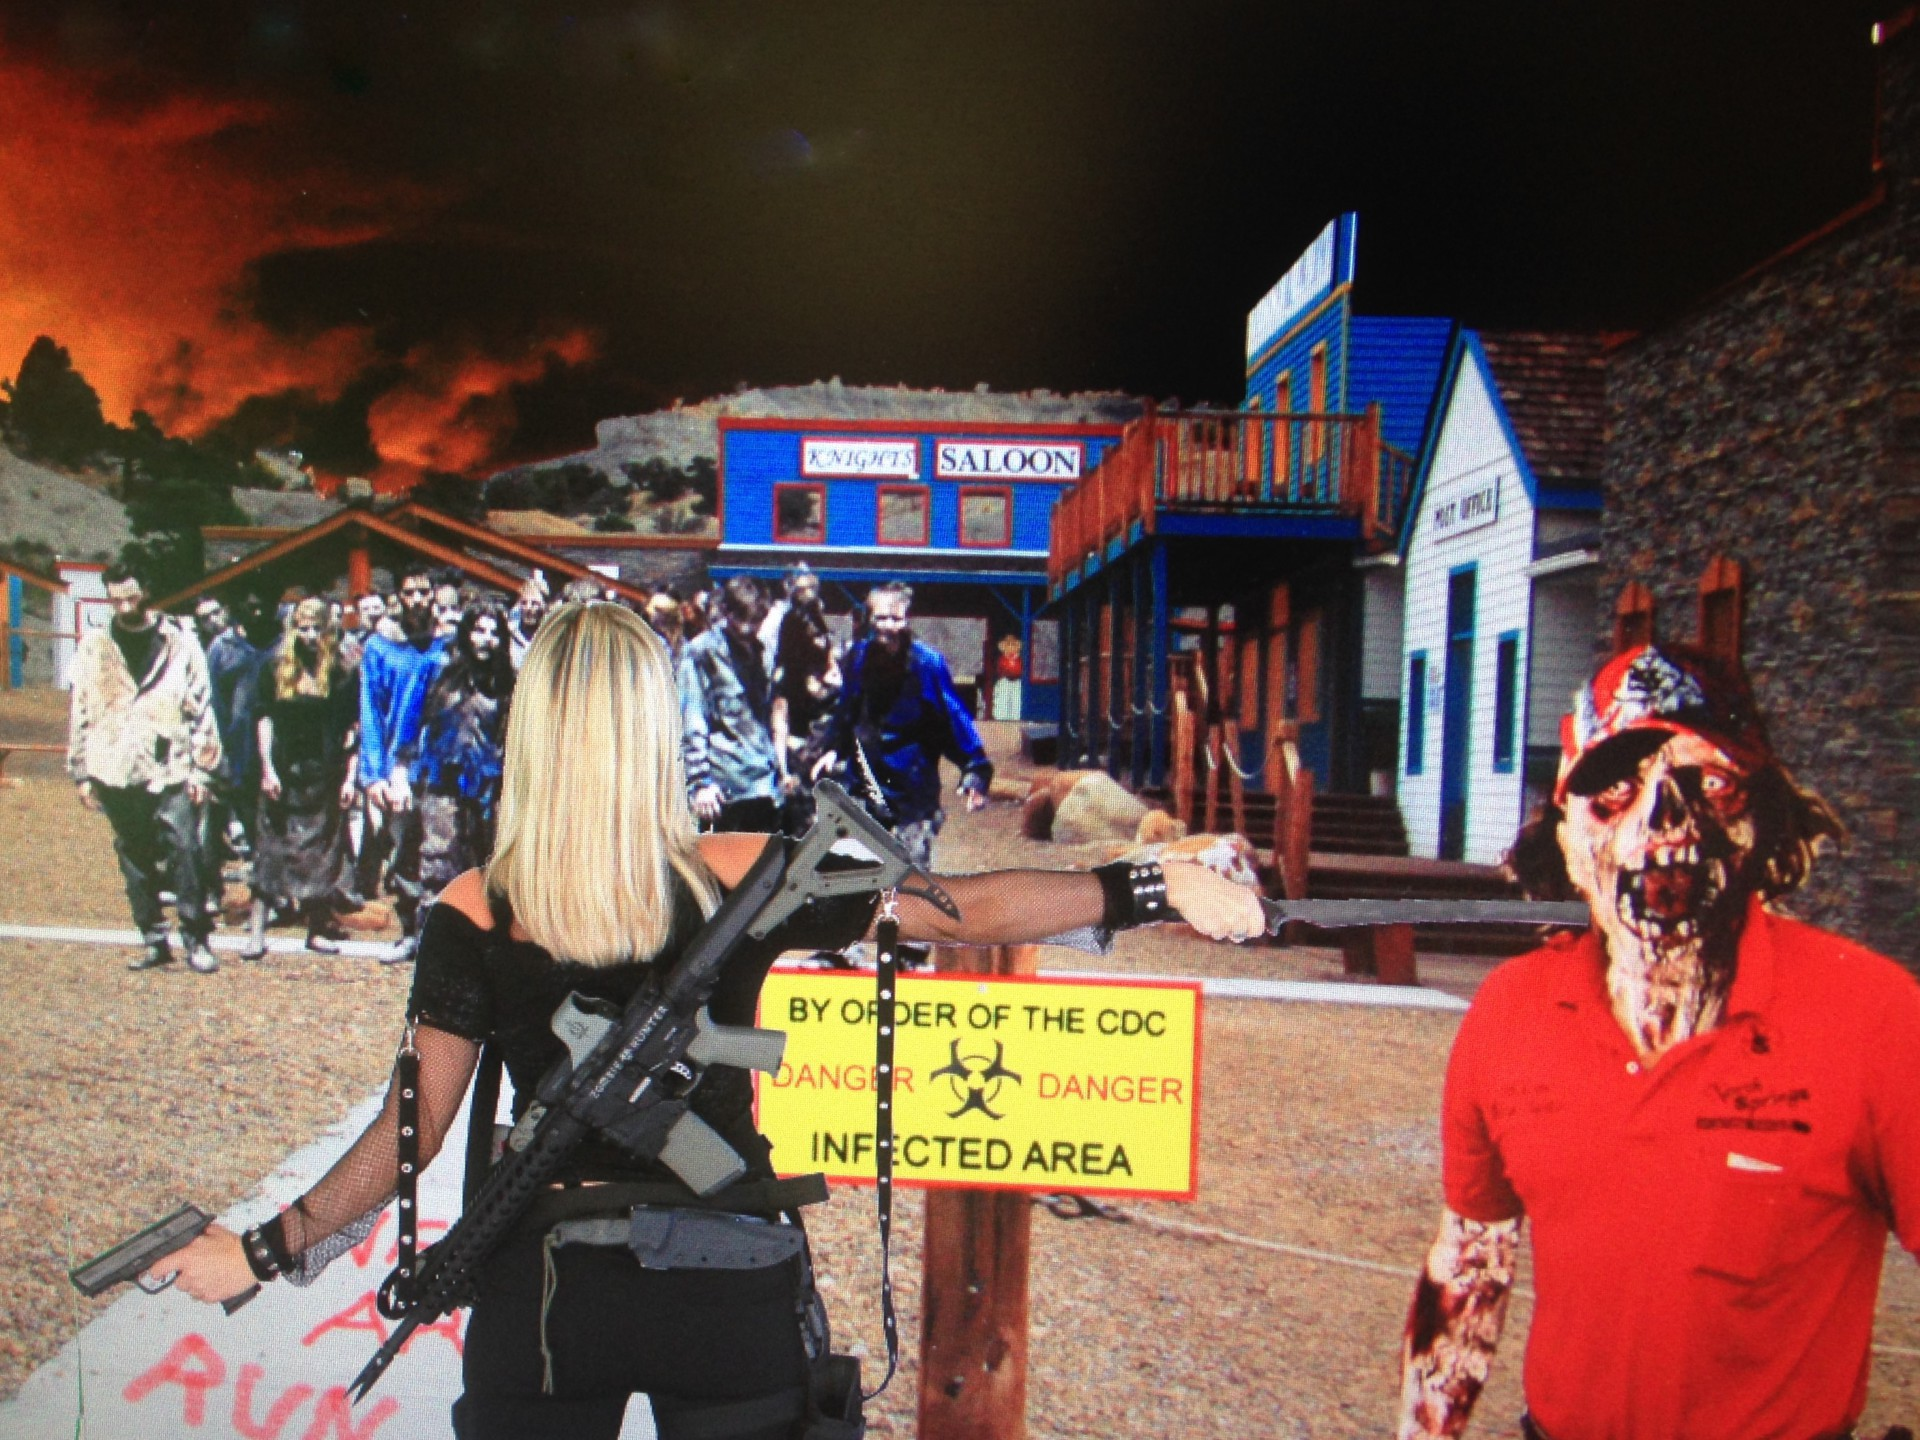 4th Annual North Springs Zombie Outbreak 2015